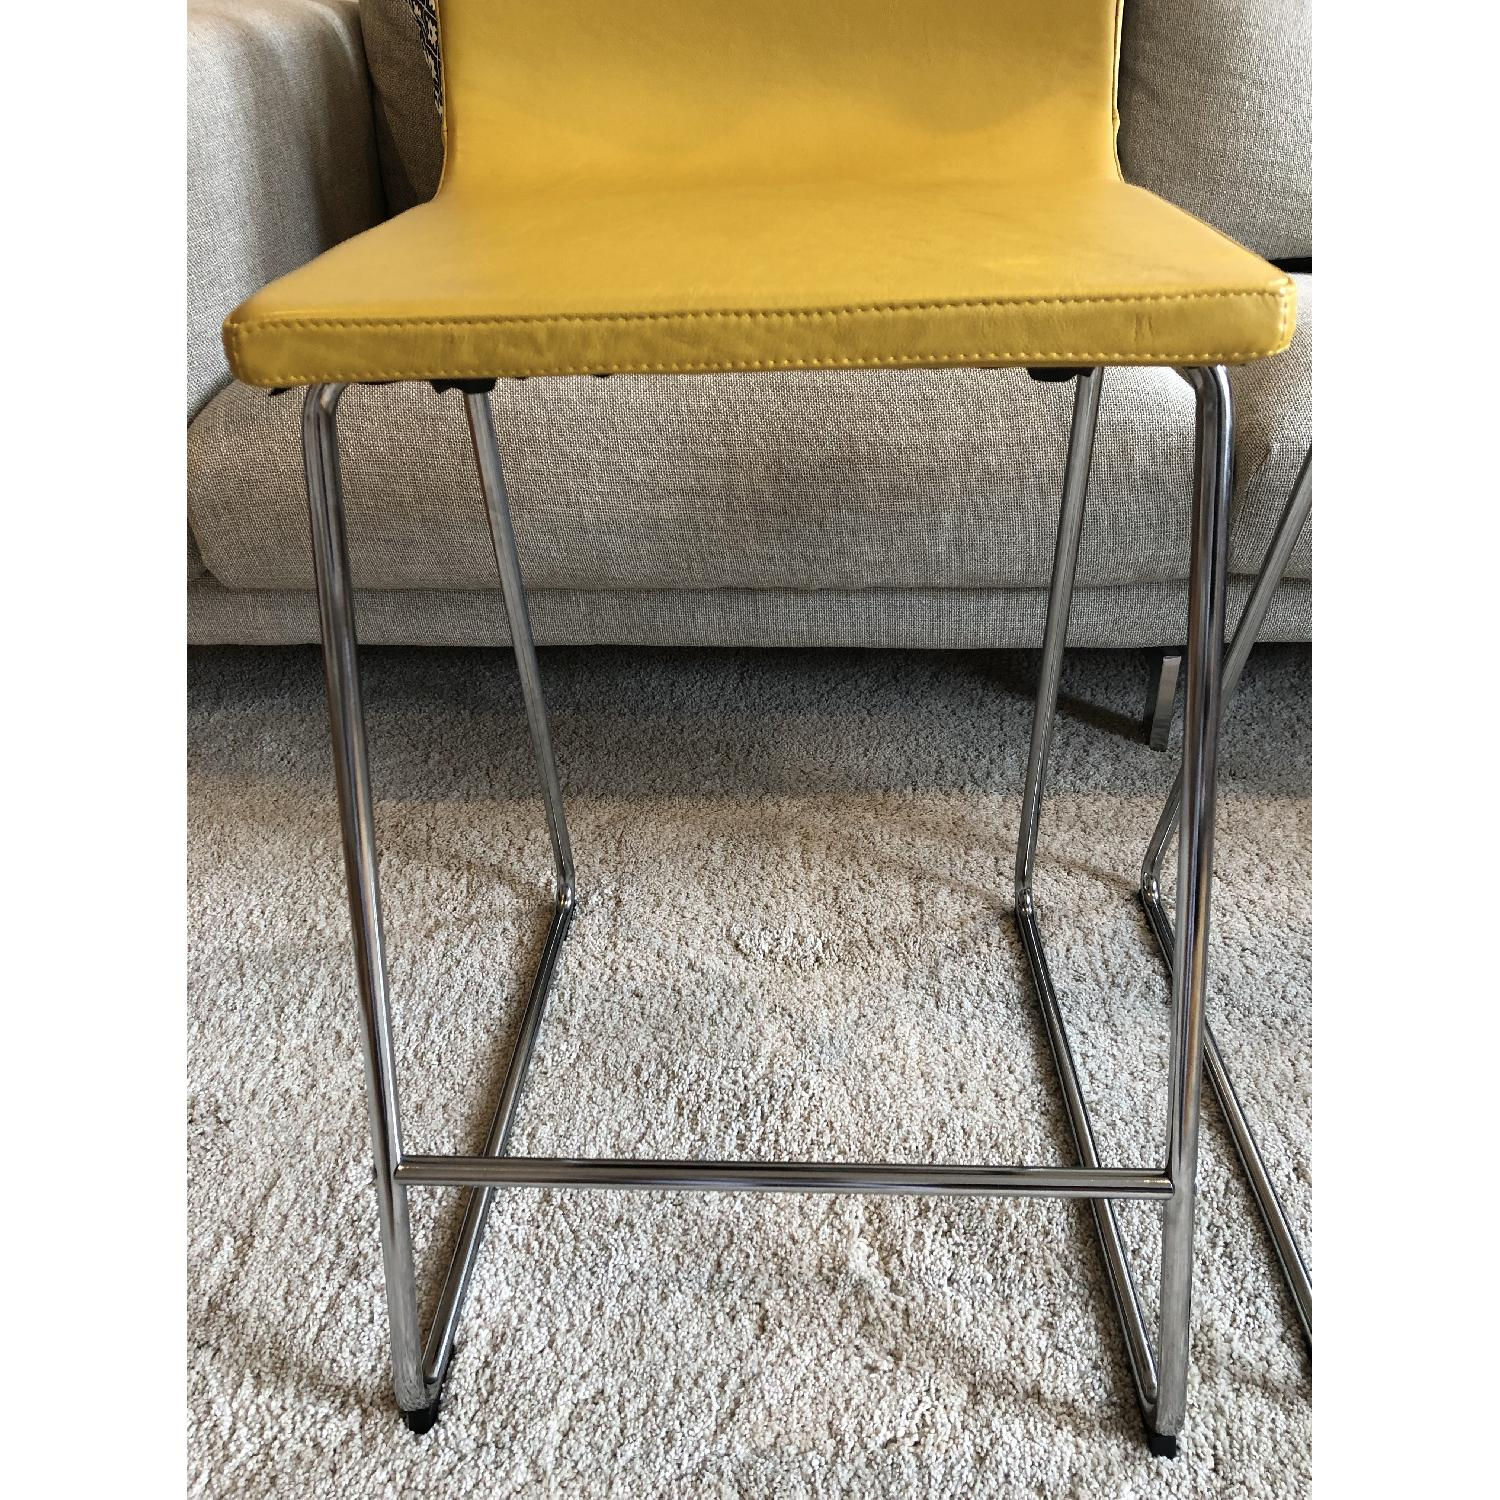 Ikea Bernhard Bar Stools w/ Backrest-3